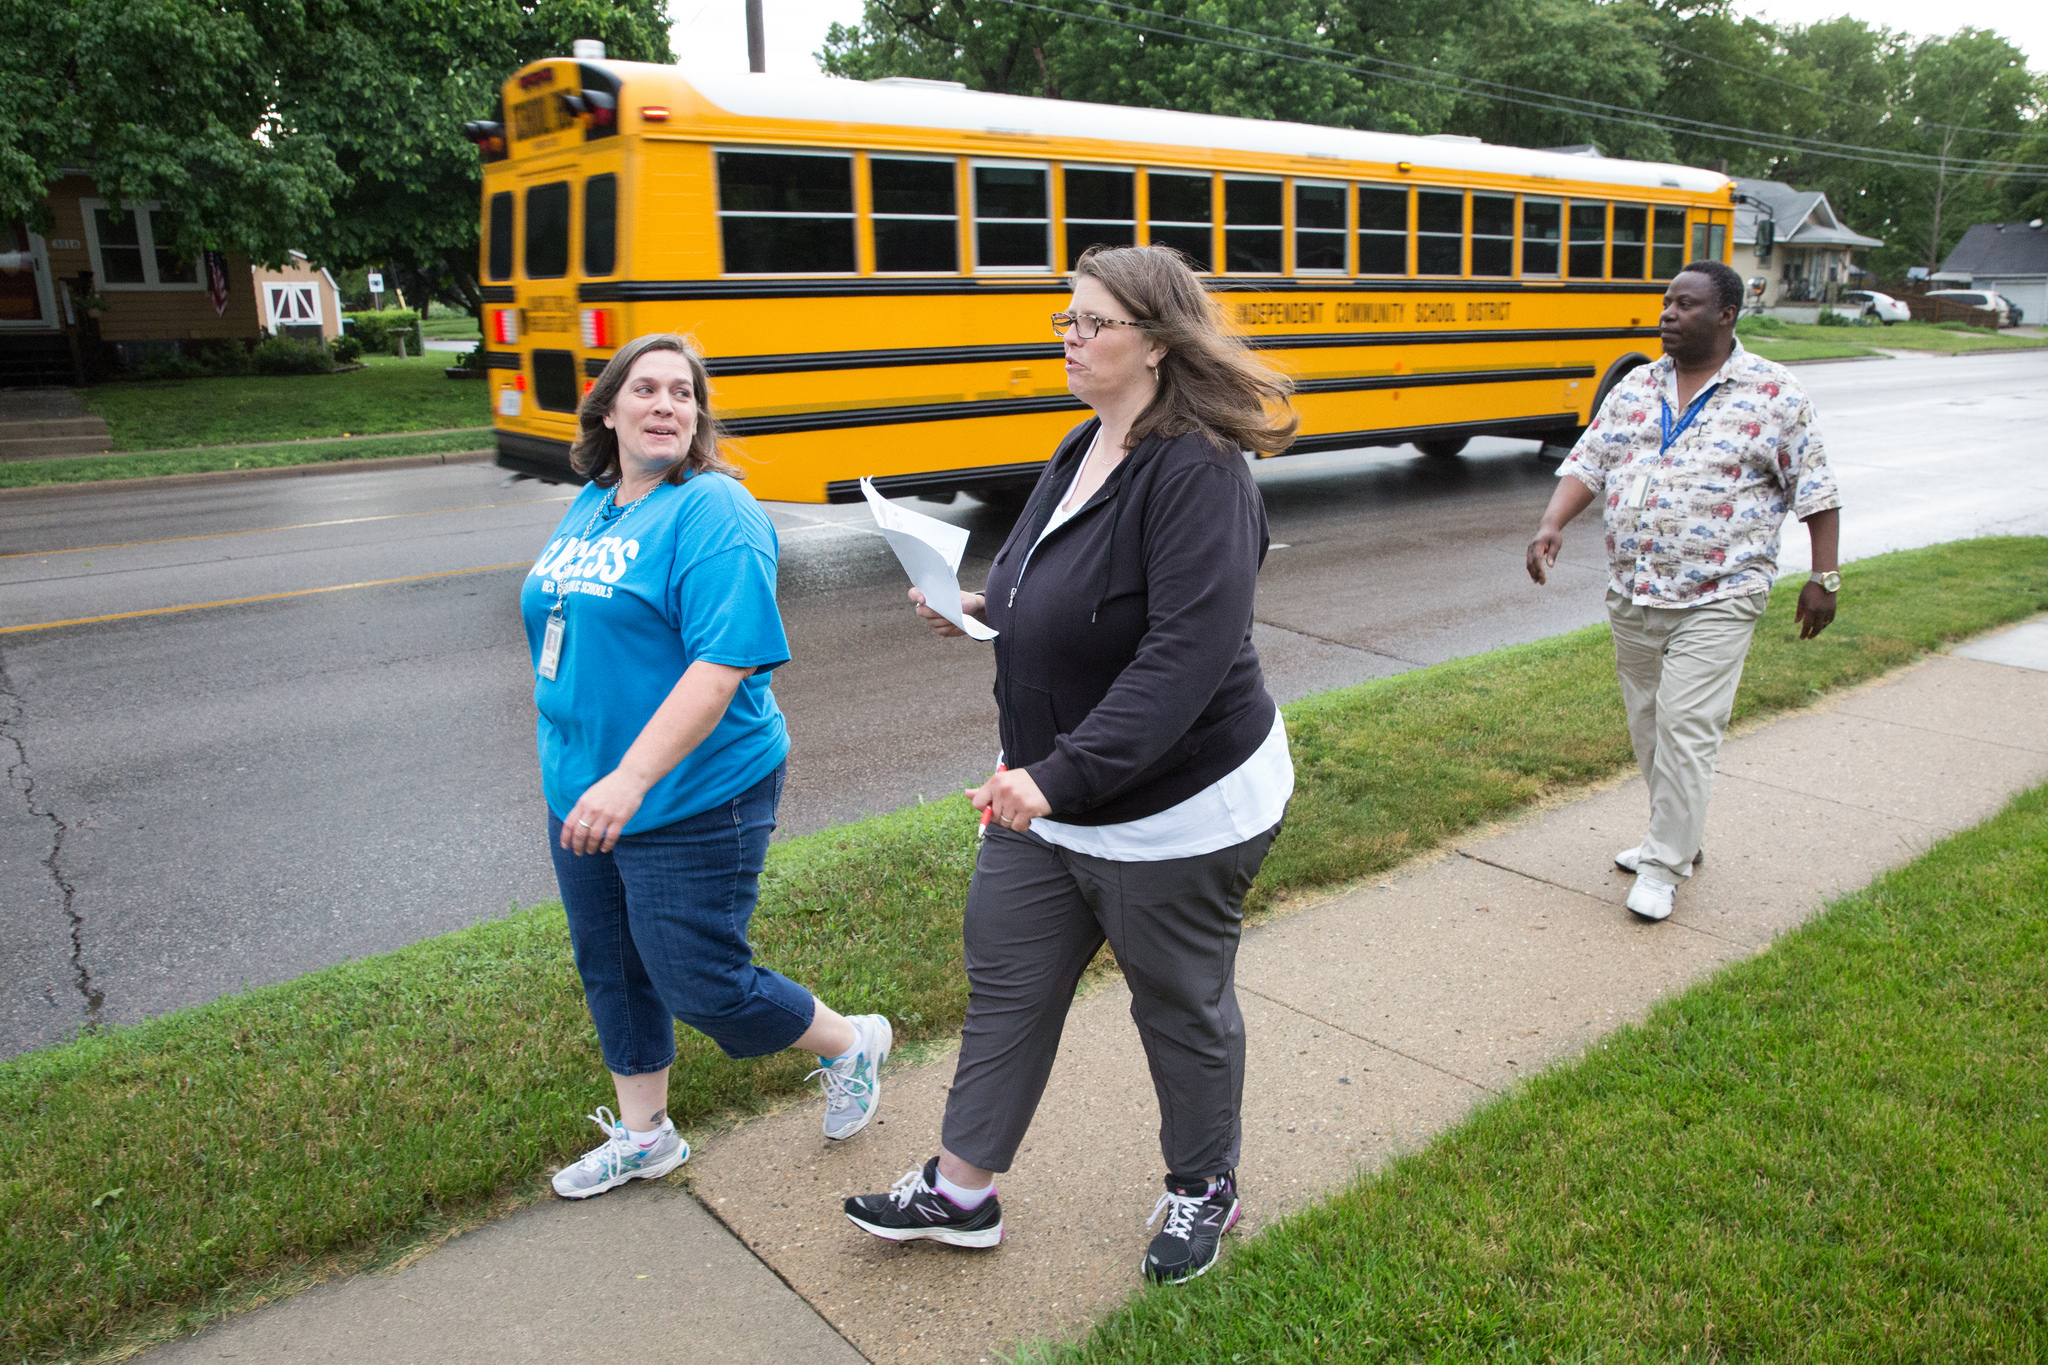 Scouting the Routes for Safe Walks to School